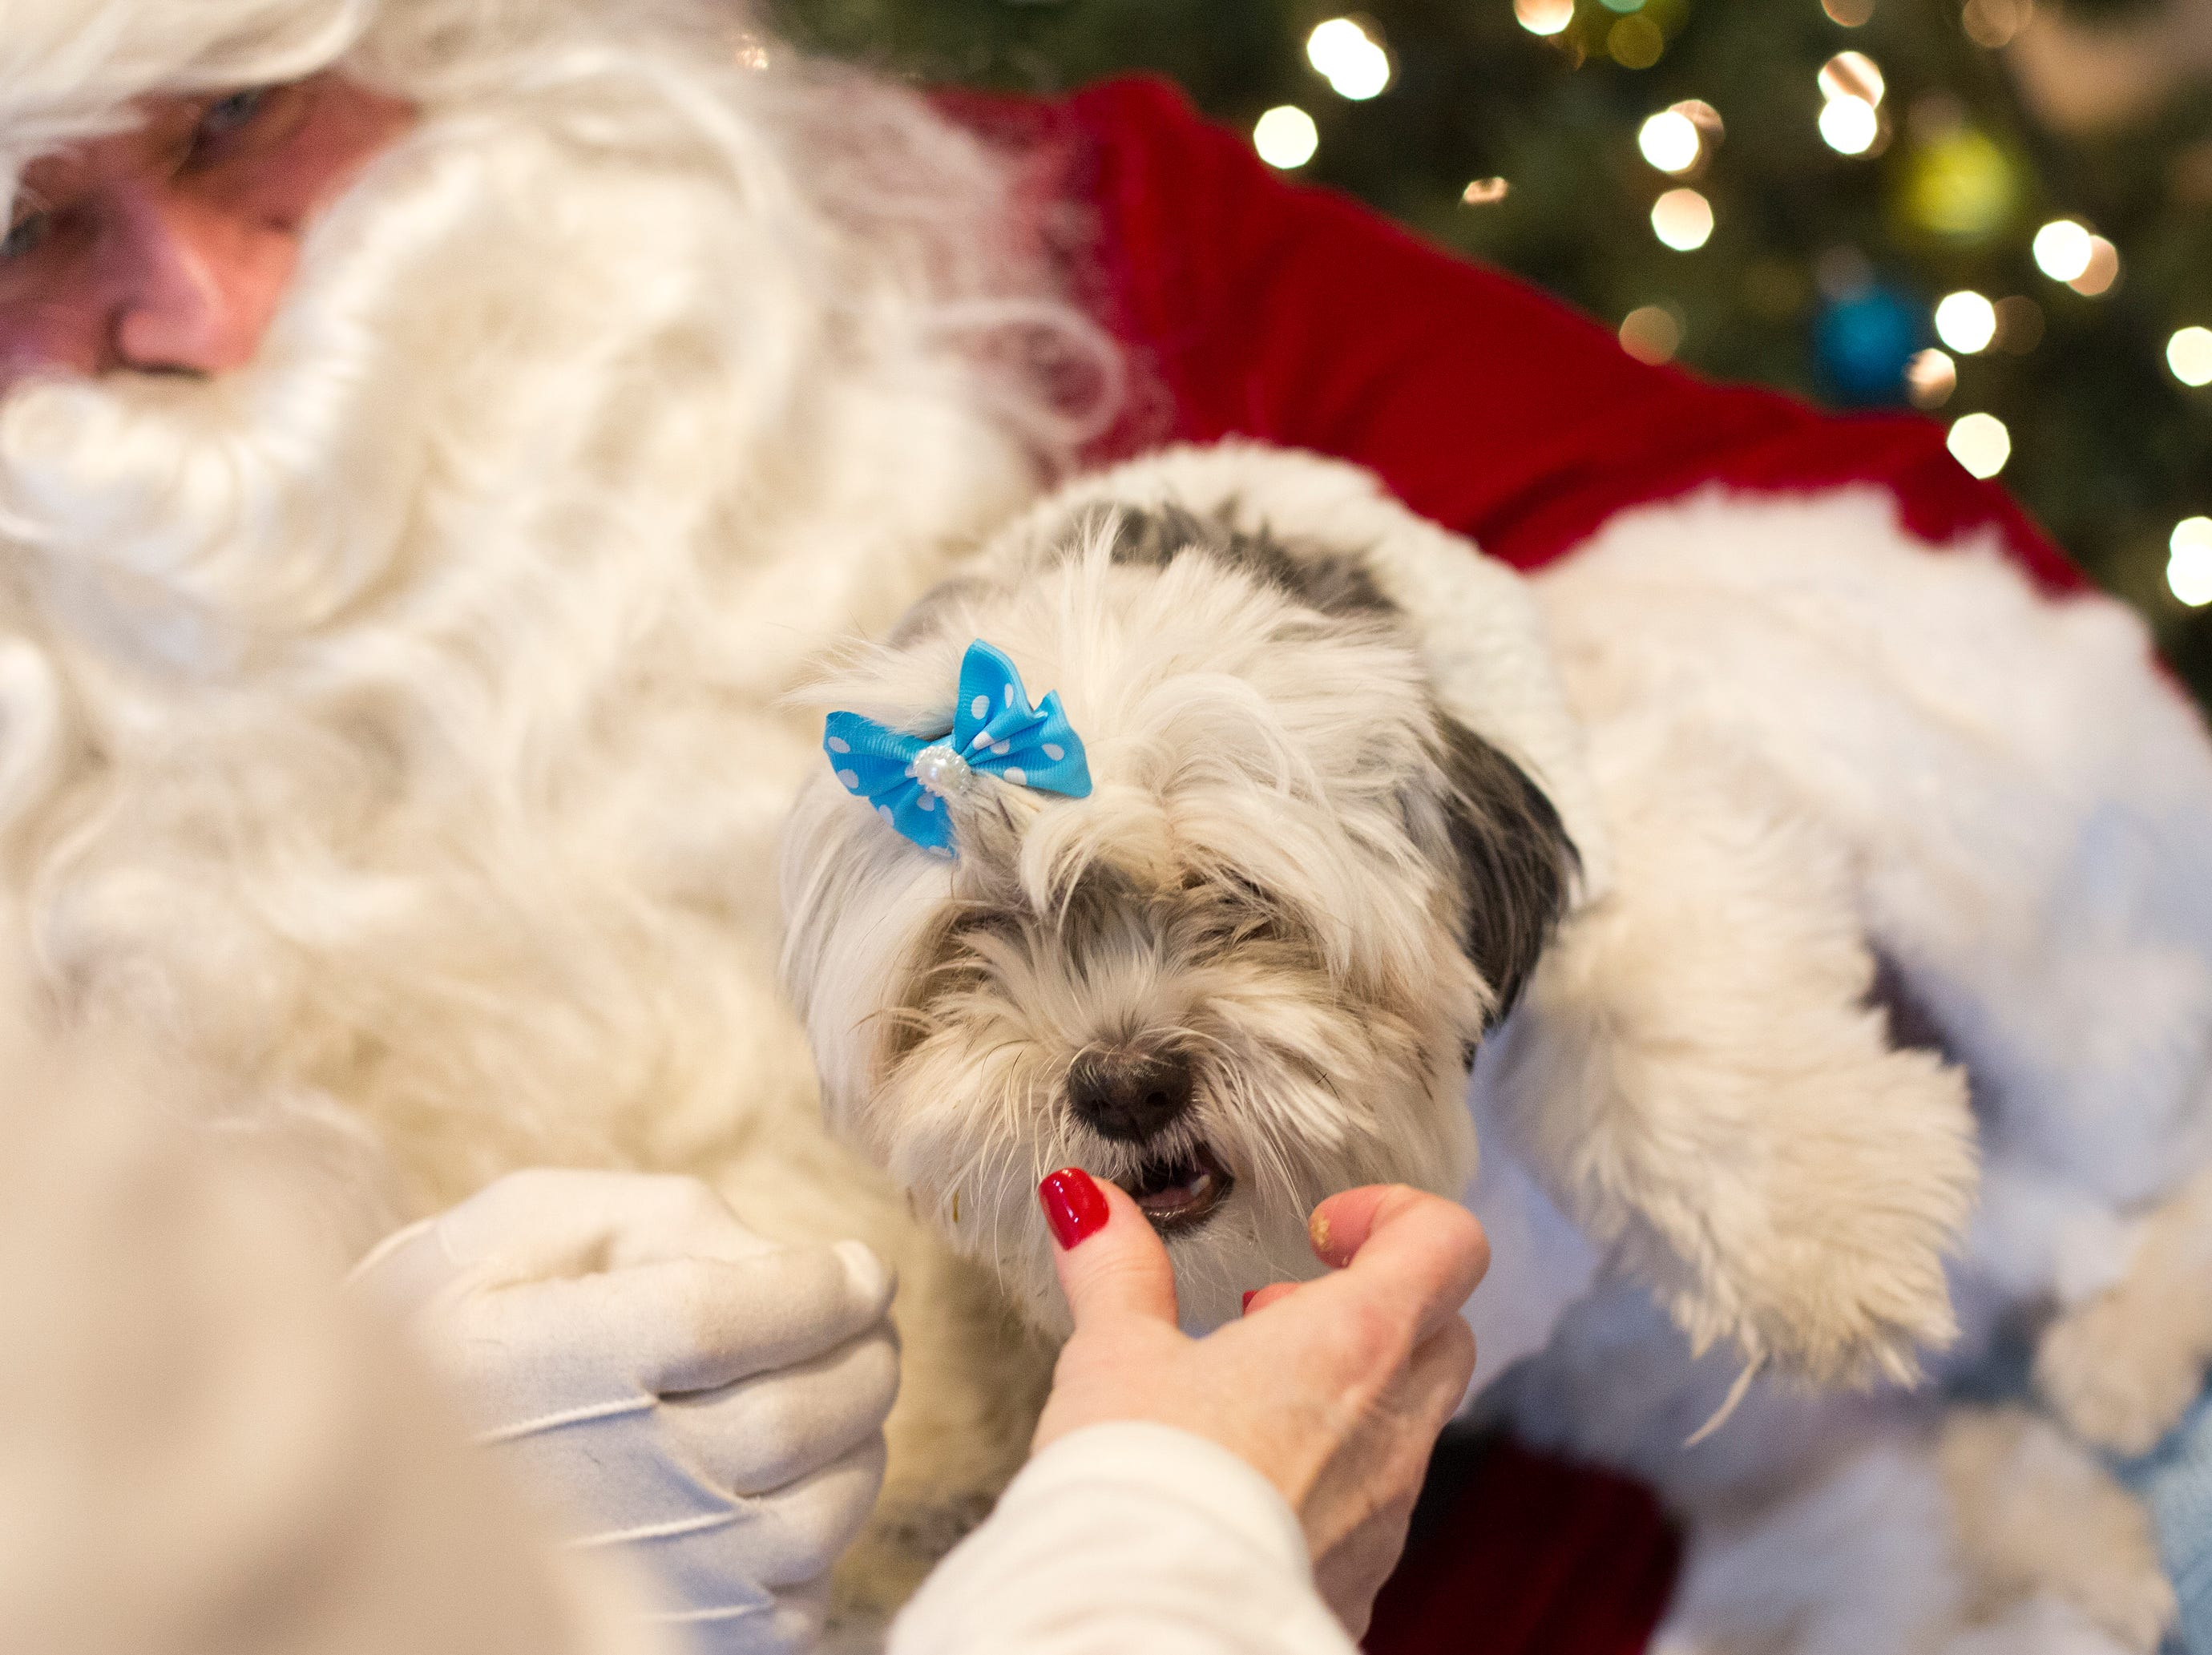 Luna, a one year old rescue dog, receives a touch up from her owner, Maria Sandoval of Belville, during the Santa Paws photo session for pets at the Rampo-Bergen Animal Refuge Inc. in Oakland on Saturday, Dec. 1, 2018. Sponsored by Allstate, all proceeds from the photo sessions go directly towards the care of animals rescued by RBARI.